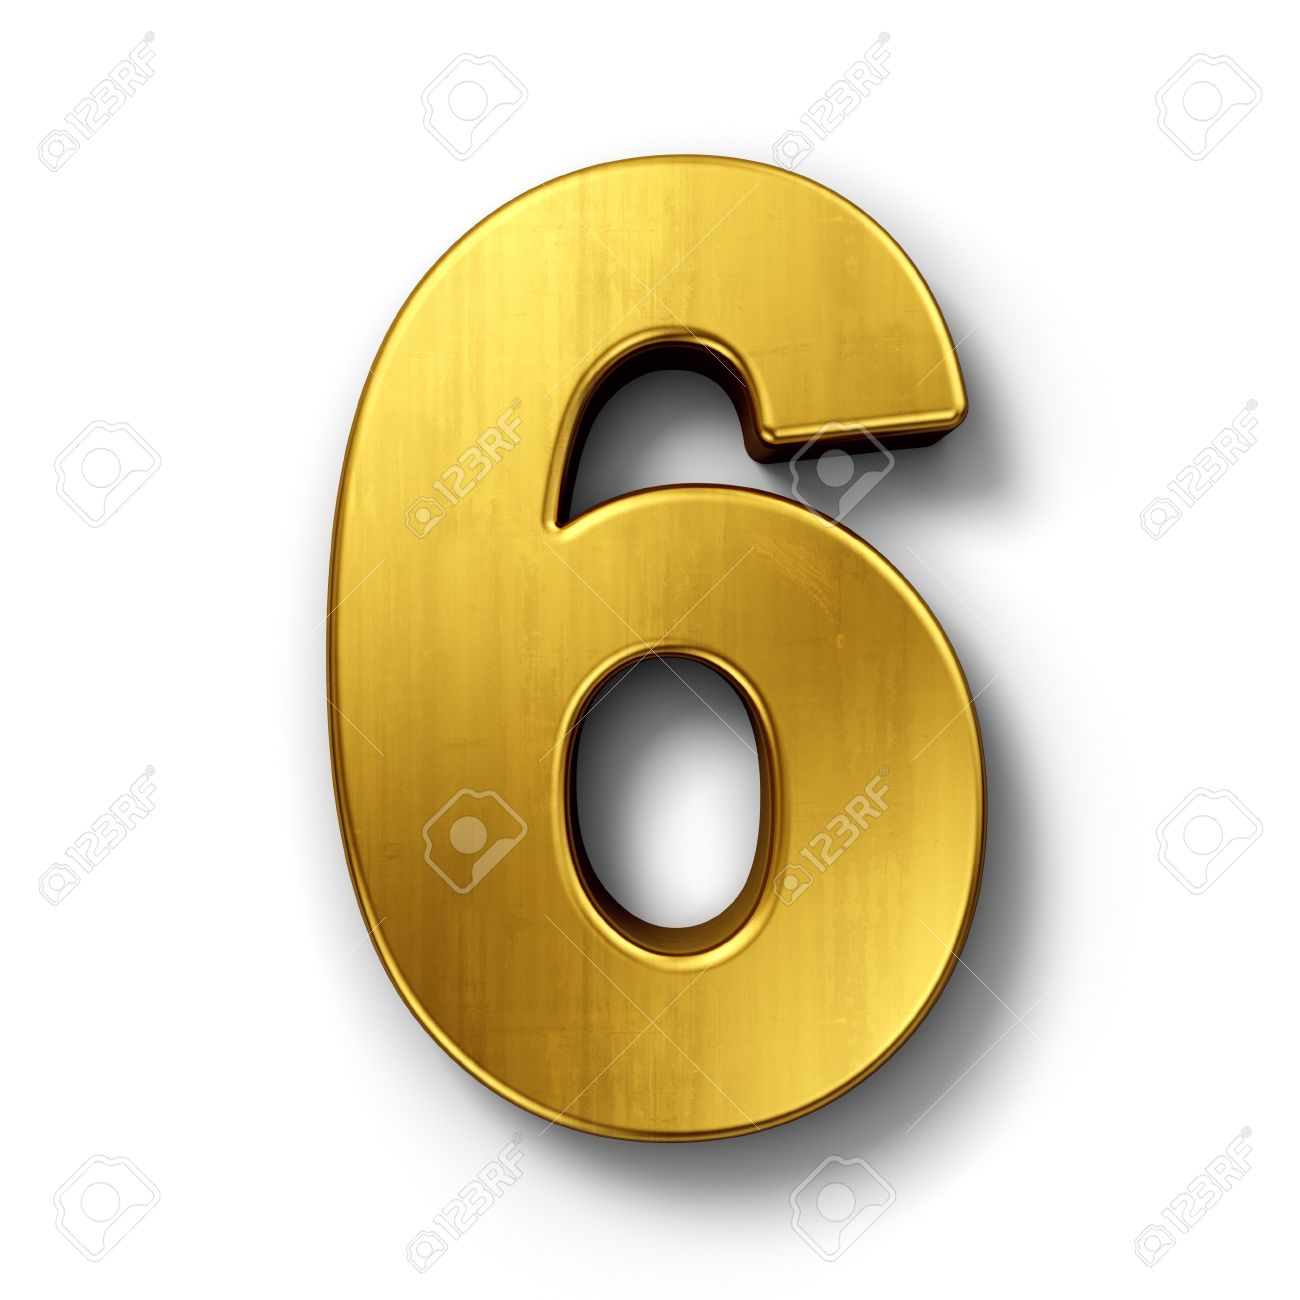 3d rendering of the number 6 in gold metal on a white isolated background stock